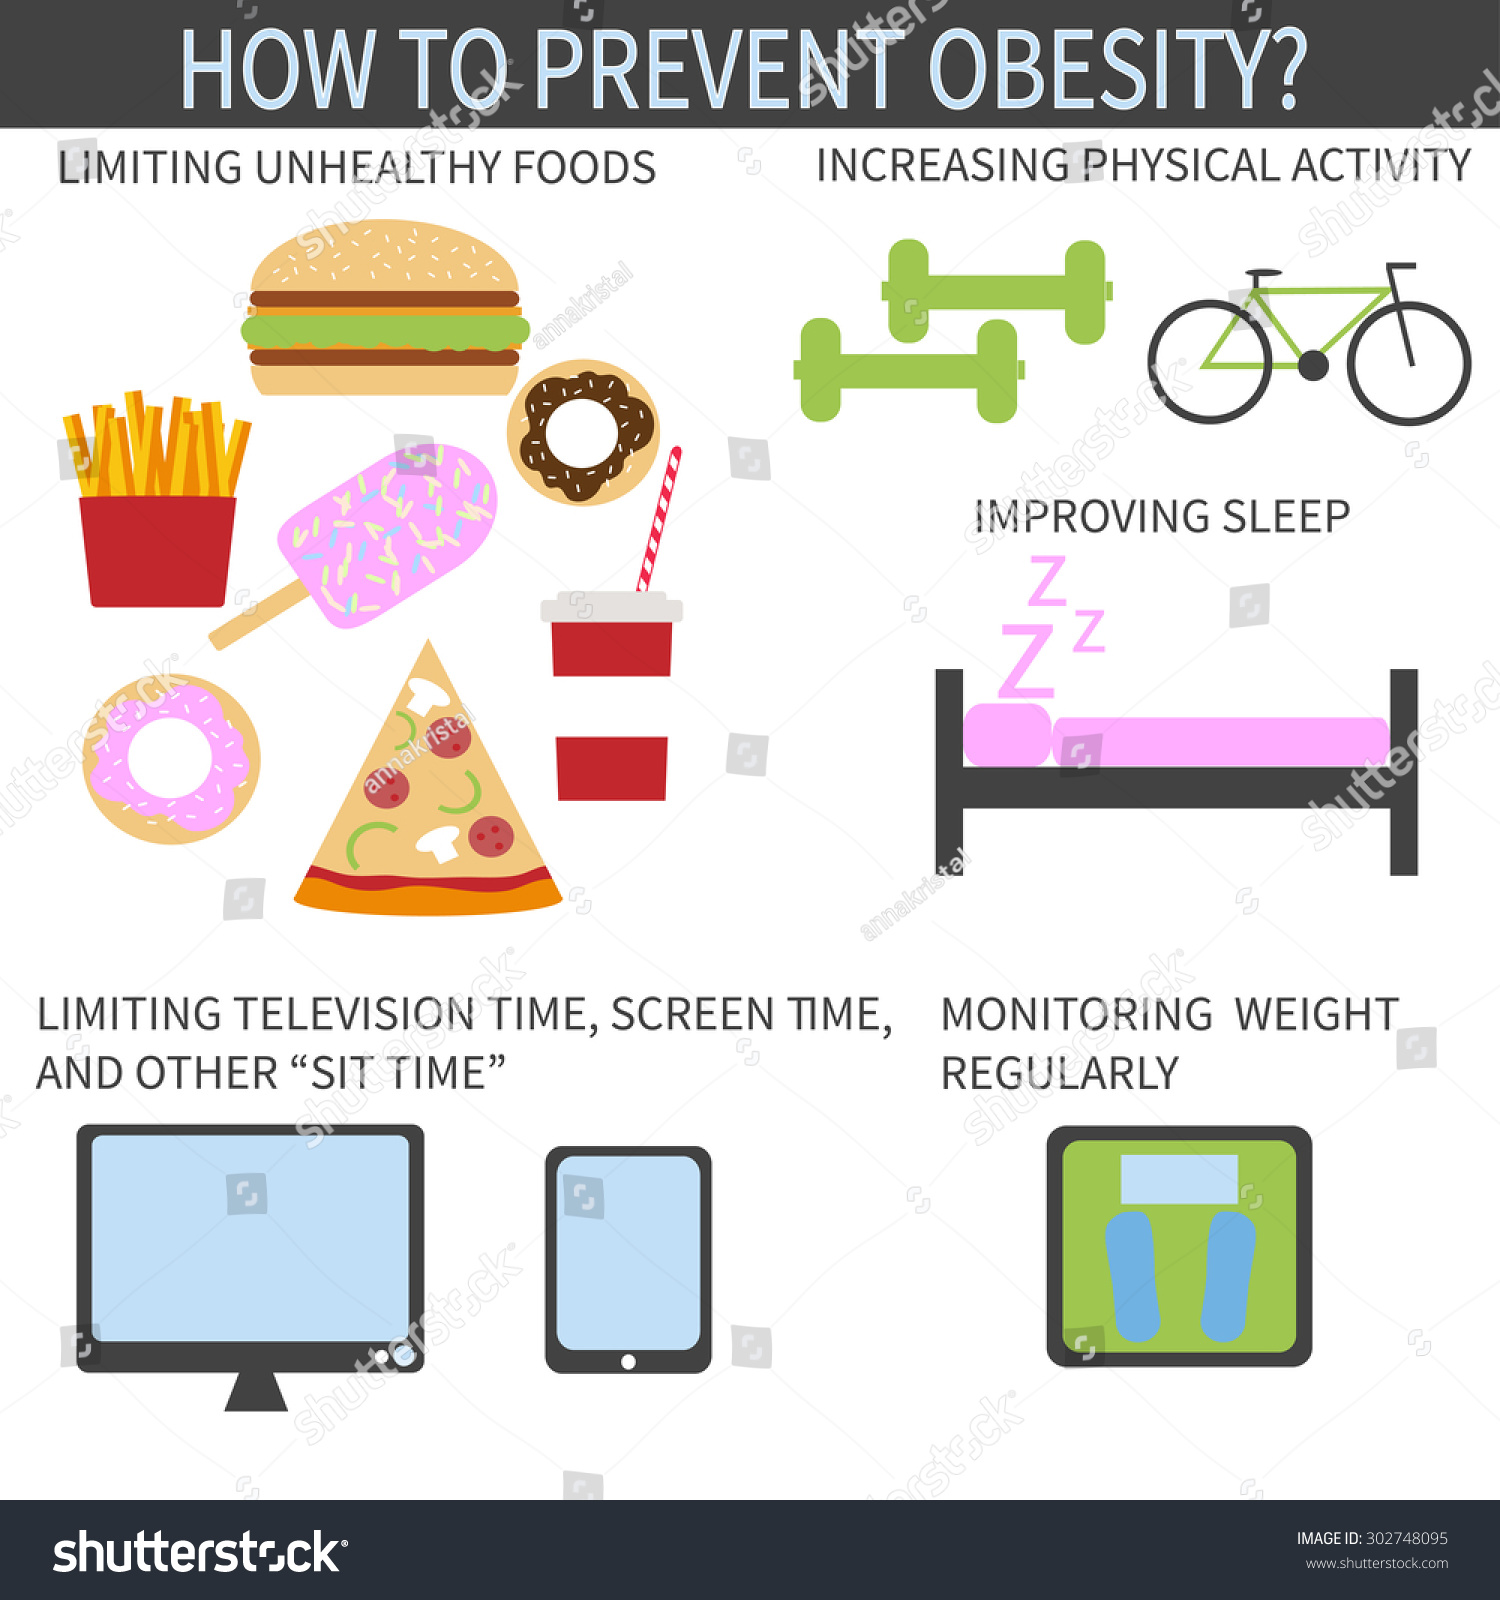 Discover 7 Simple Ways to Prevent Obesity